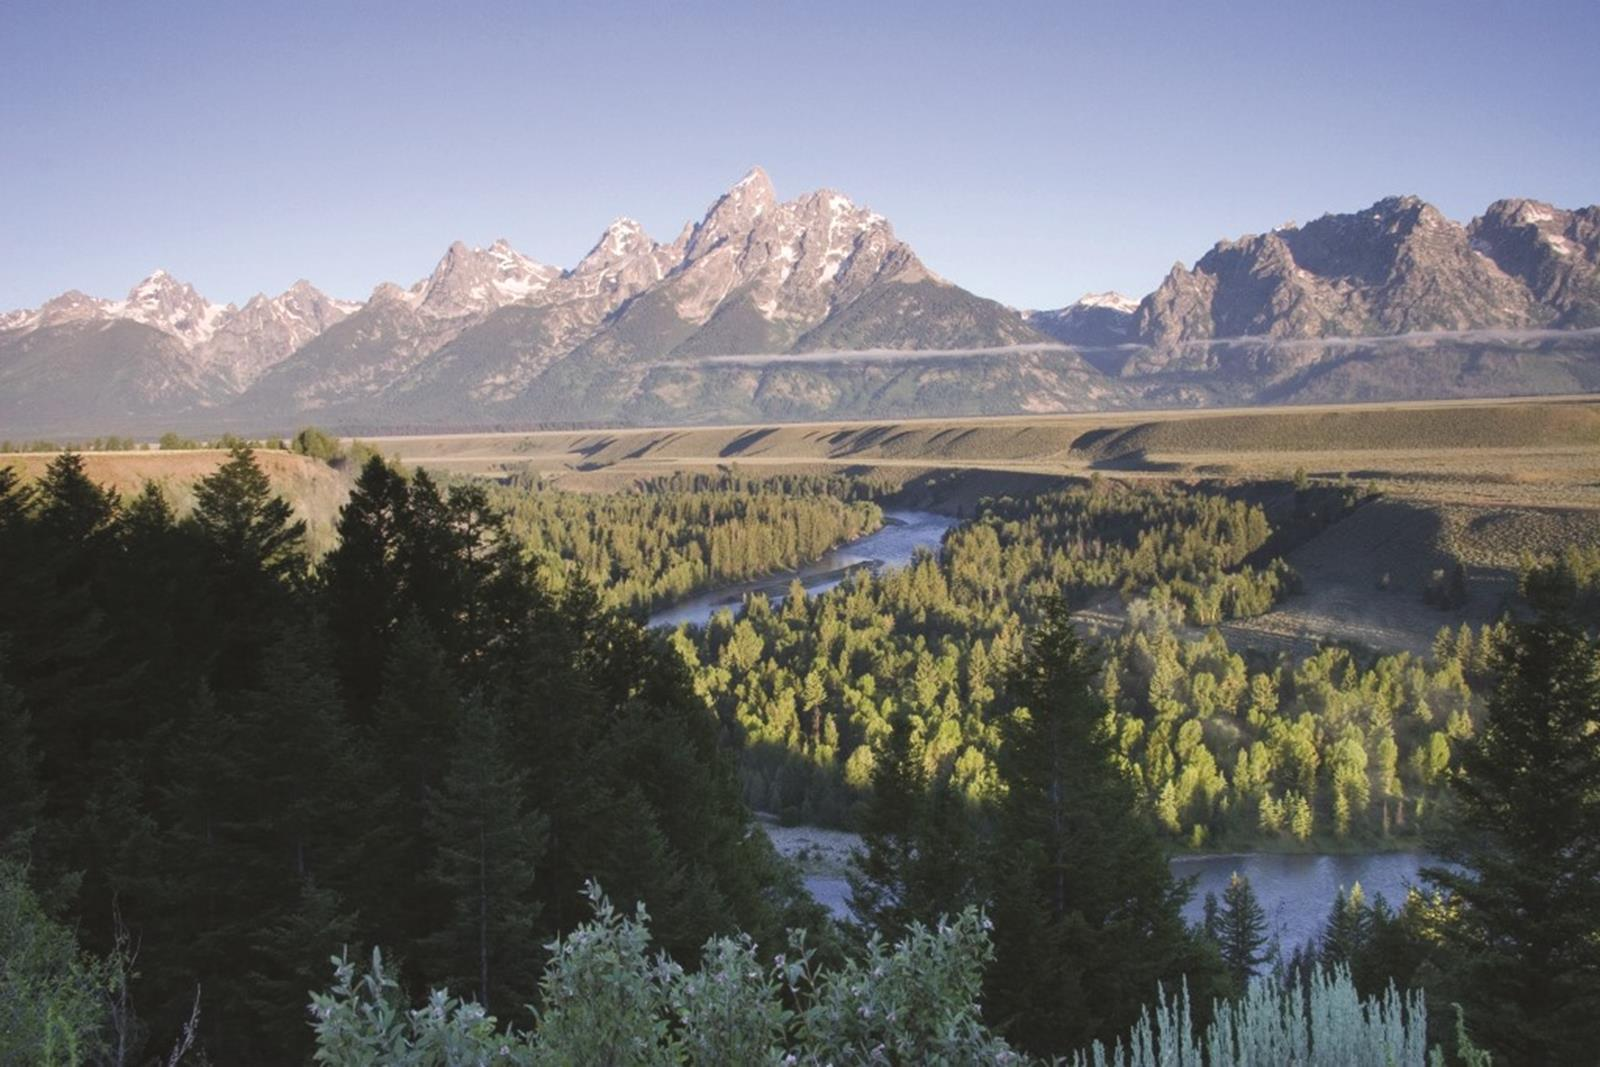 Teton overlook. Credit: Jackson Hole Chamber of Commerce.